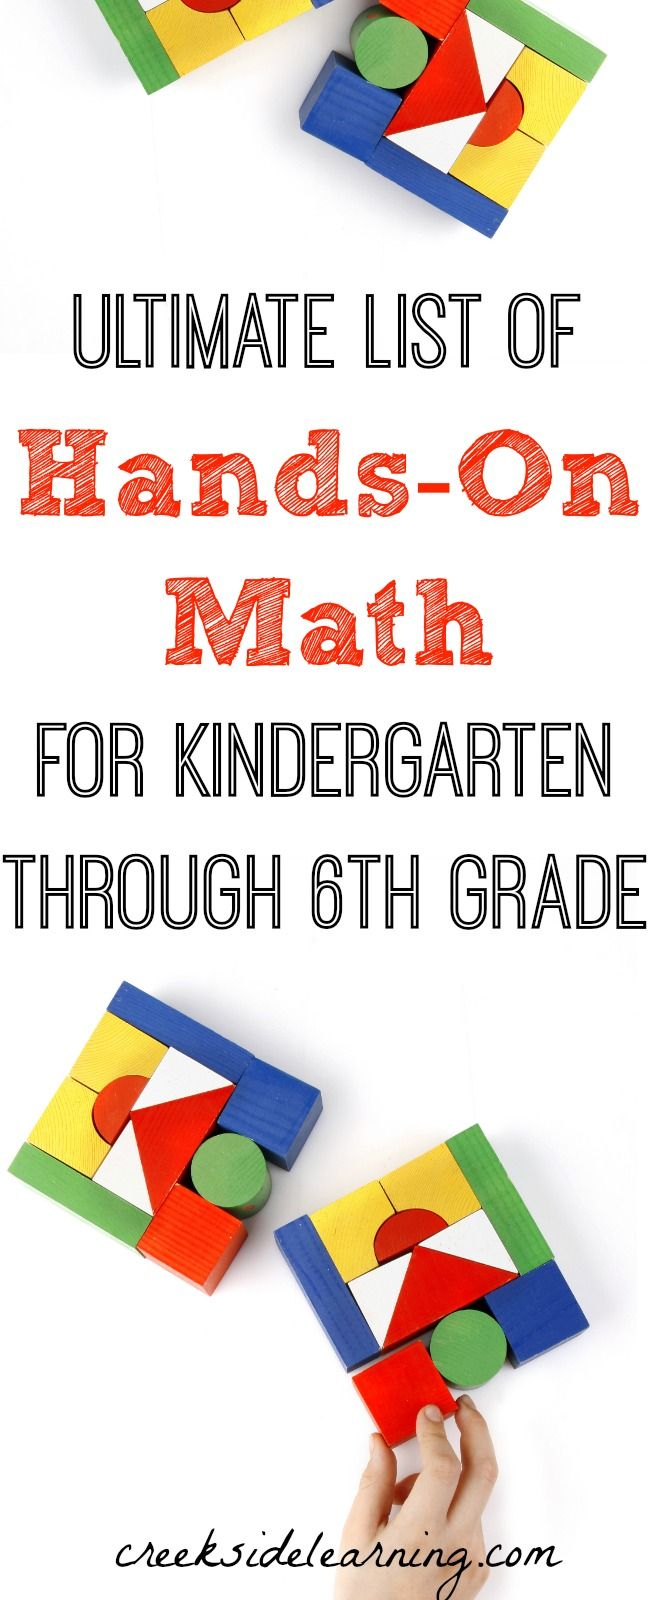 Ultimate List of Hands On Math for Kindergarten Through 6th Grade ...